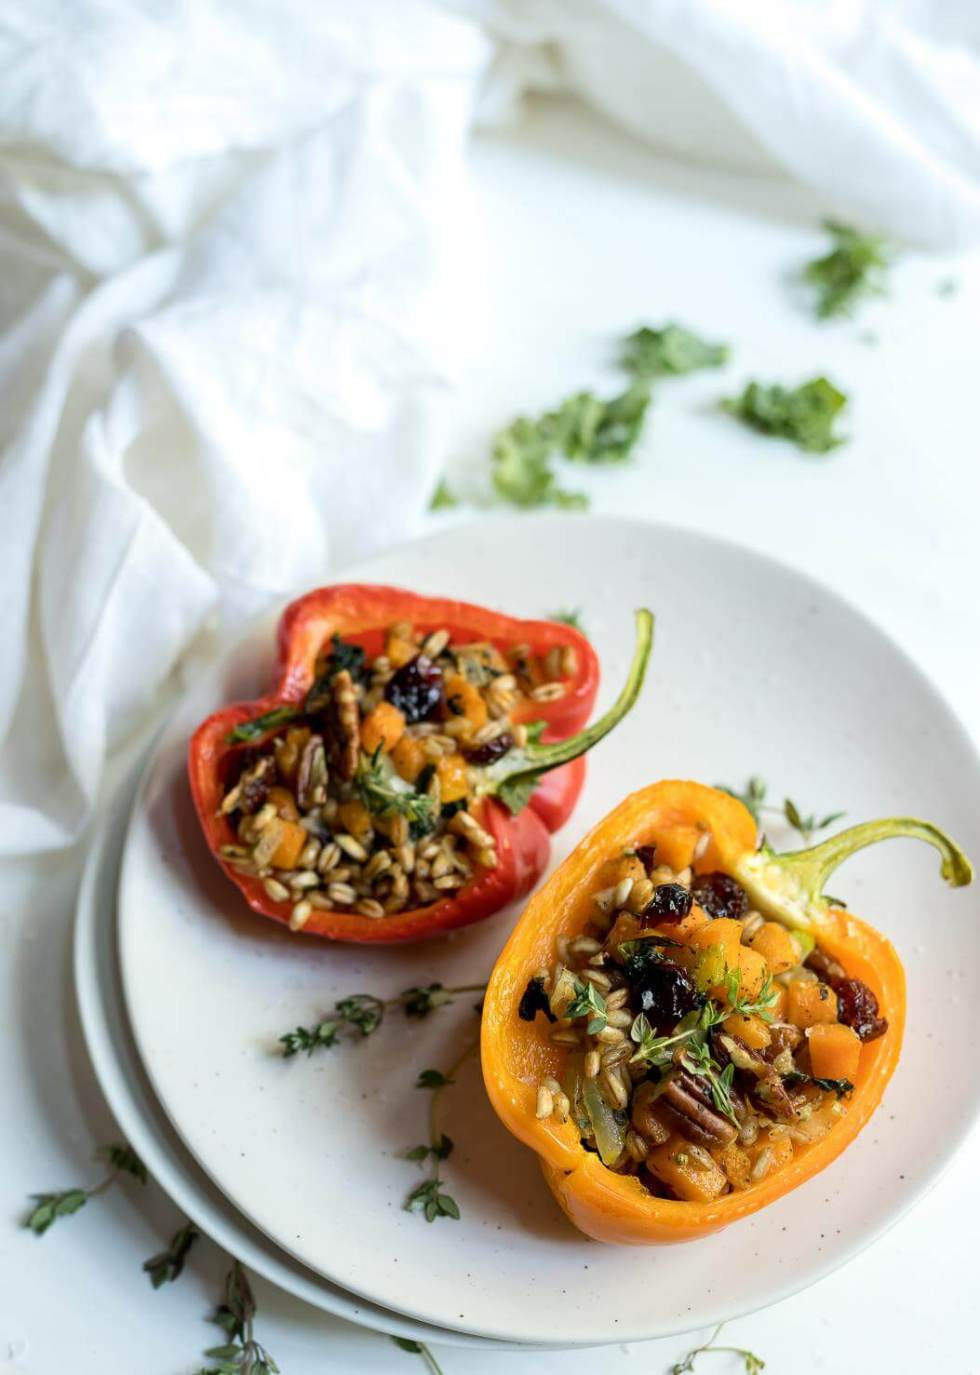 farro salad stuffed peppers recipe on white plates with white background